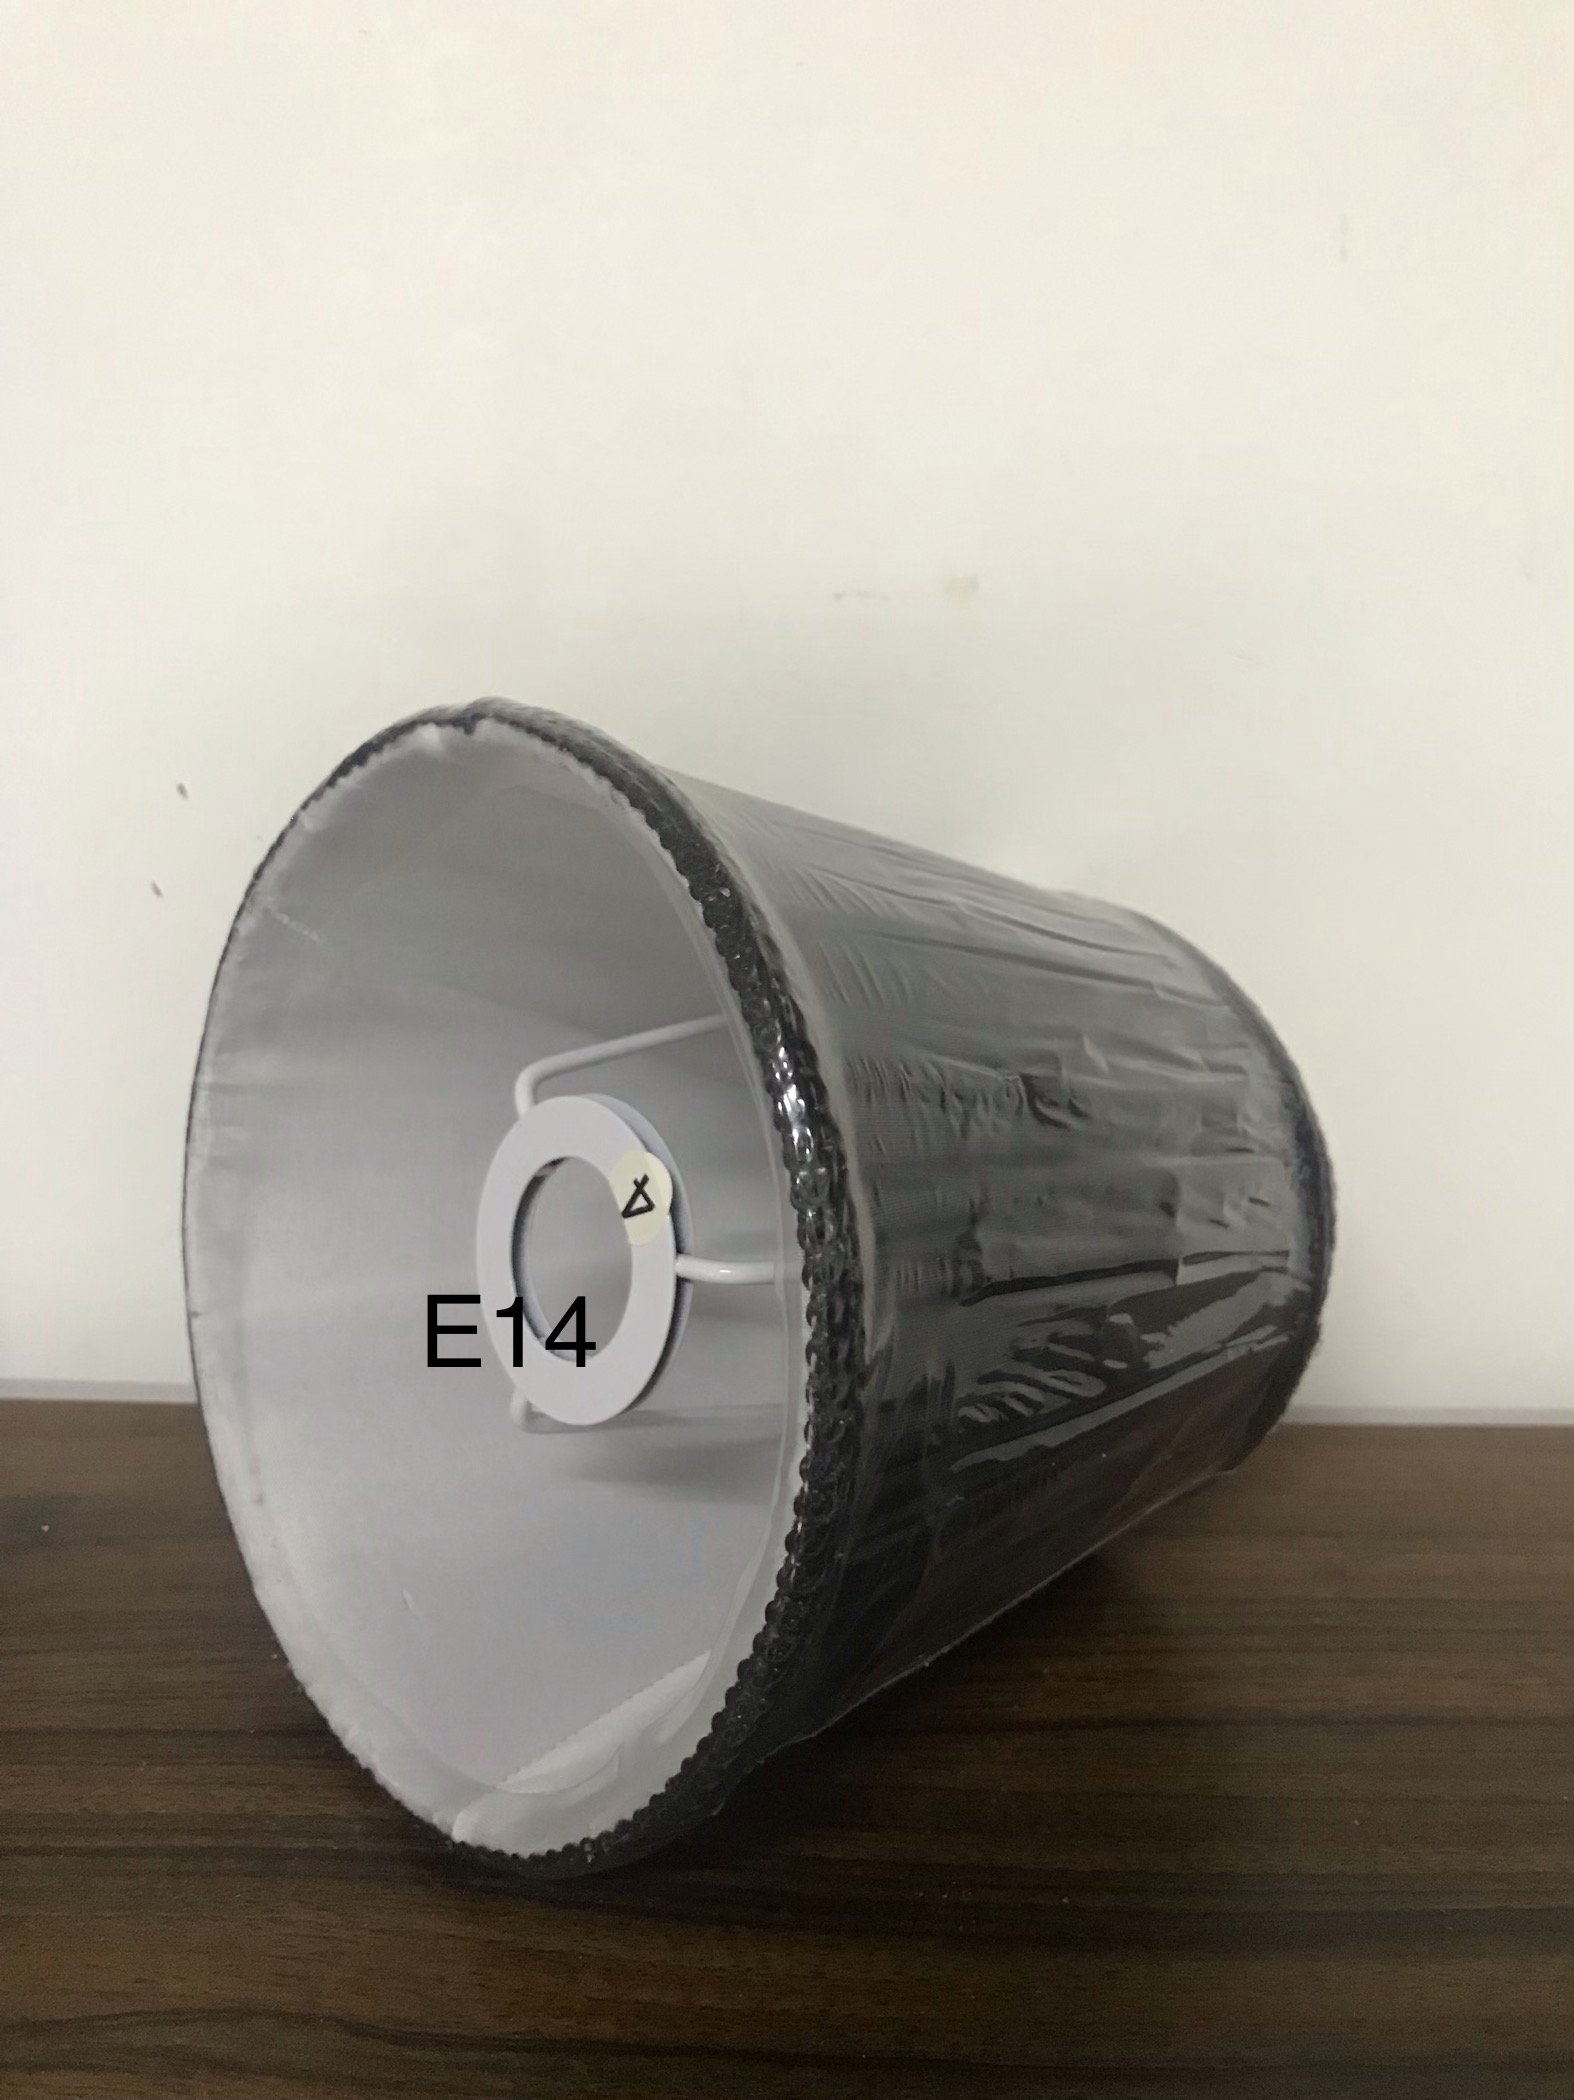 lampshade for E14 wall lamp cover and pendant lamp cover for home lighting deocrationlampshade for E14 wall lamp cover and pendant lamp cover for home lighting deocration